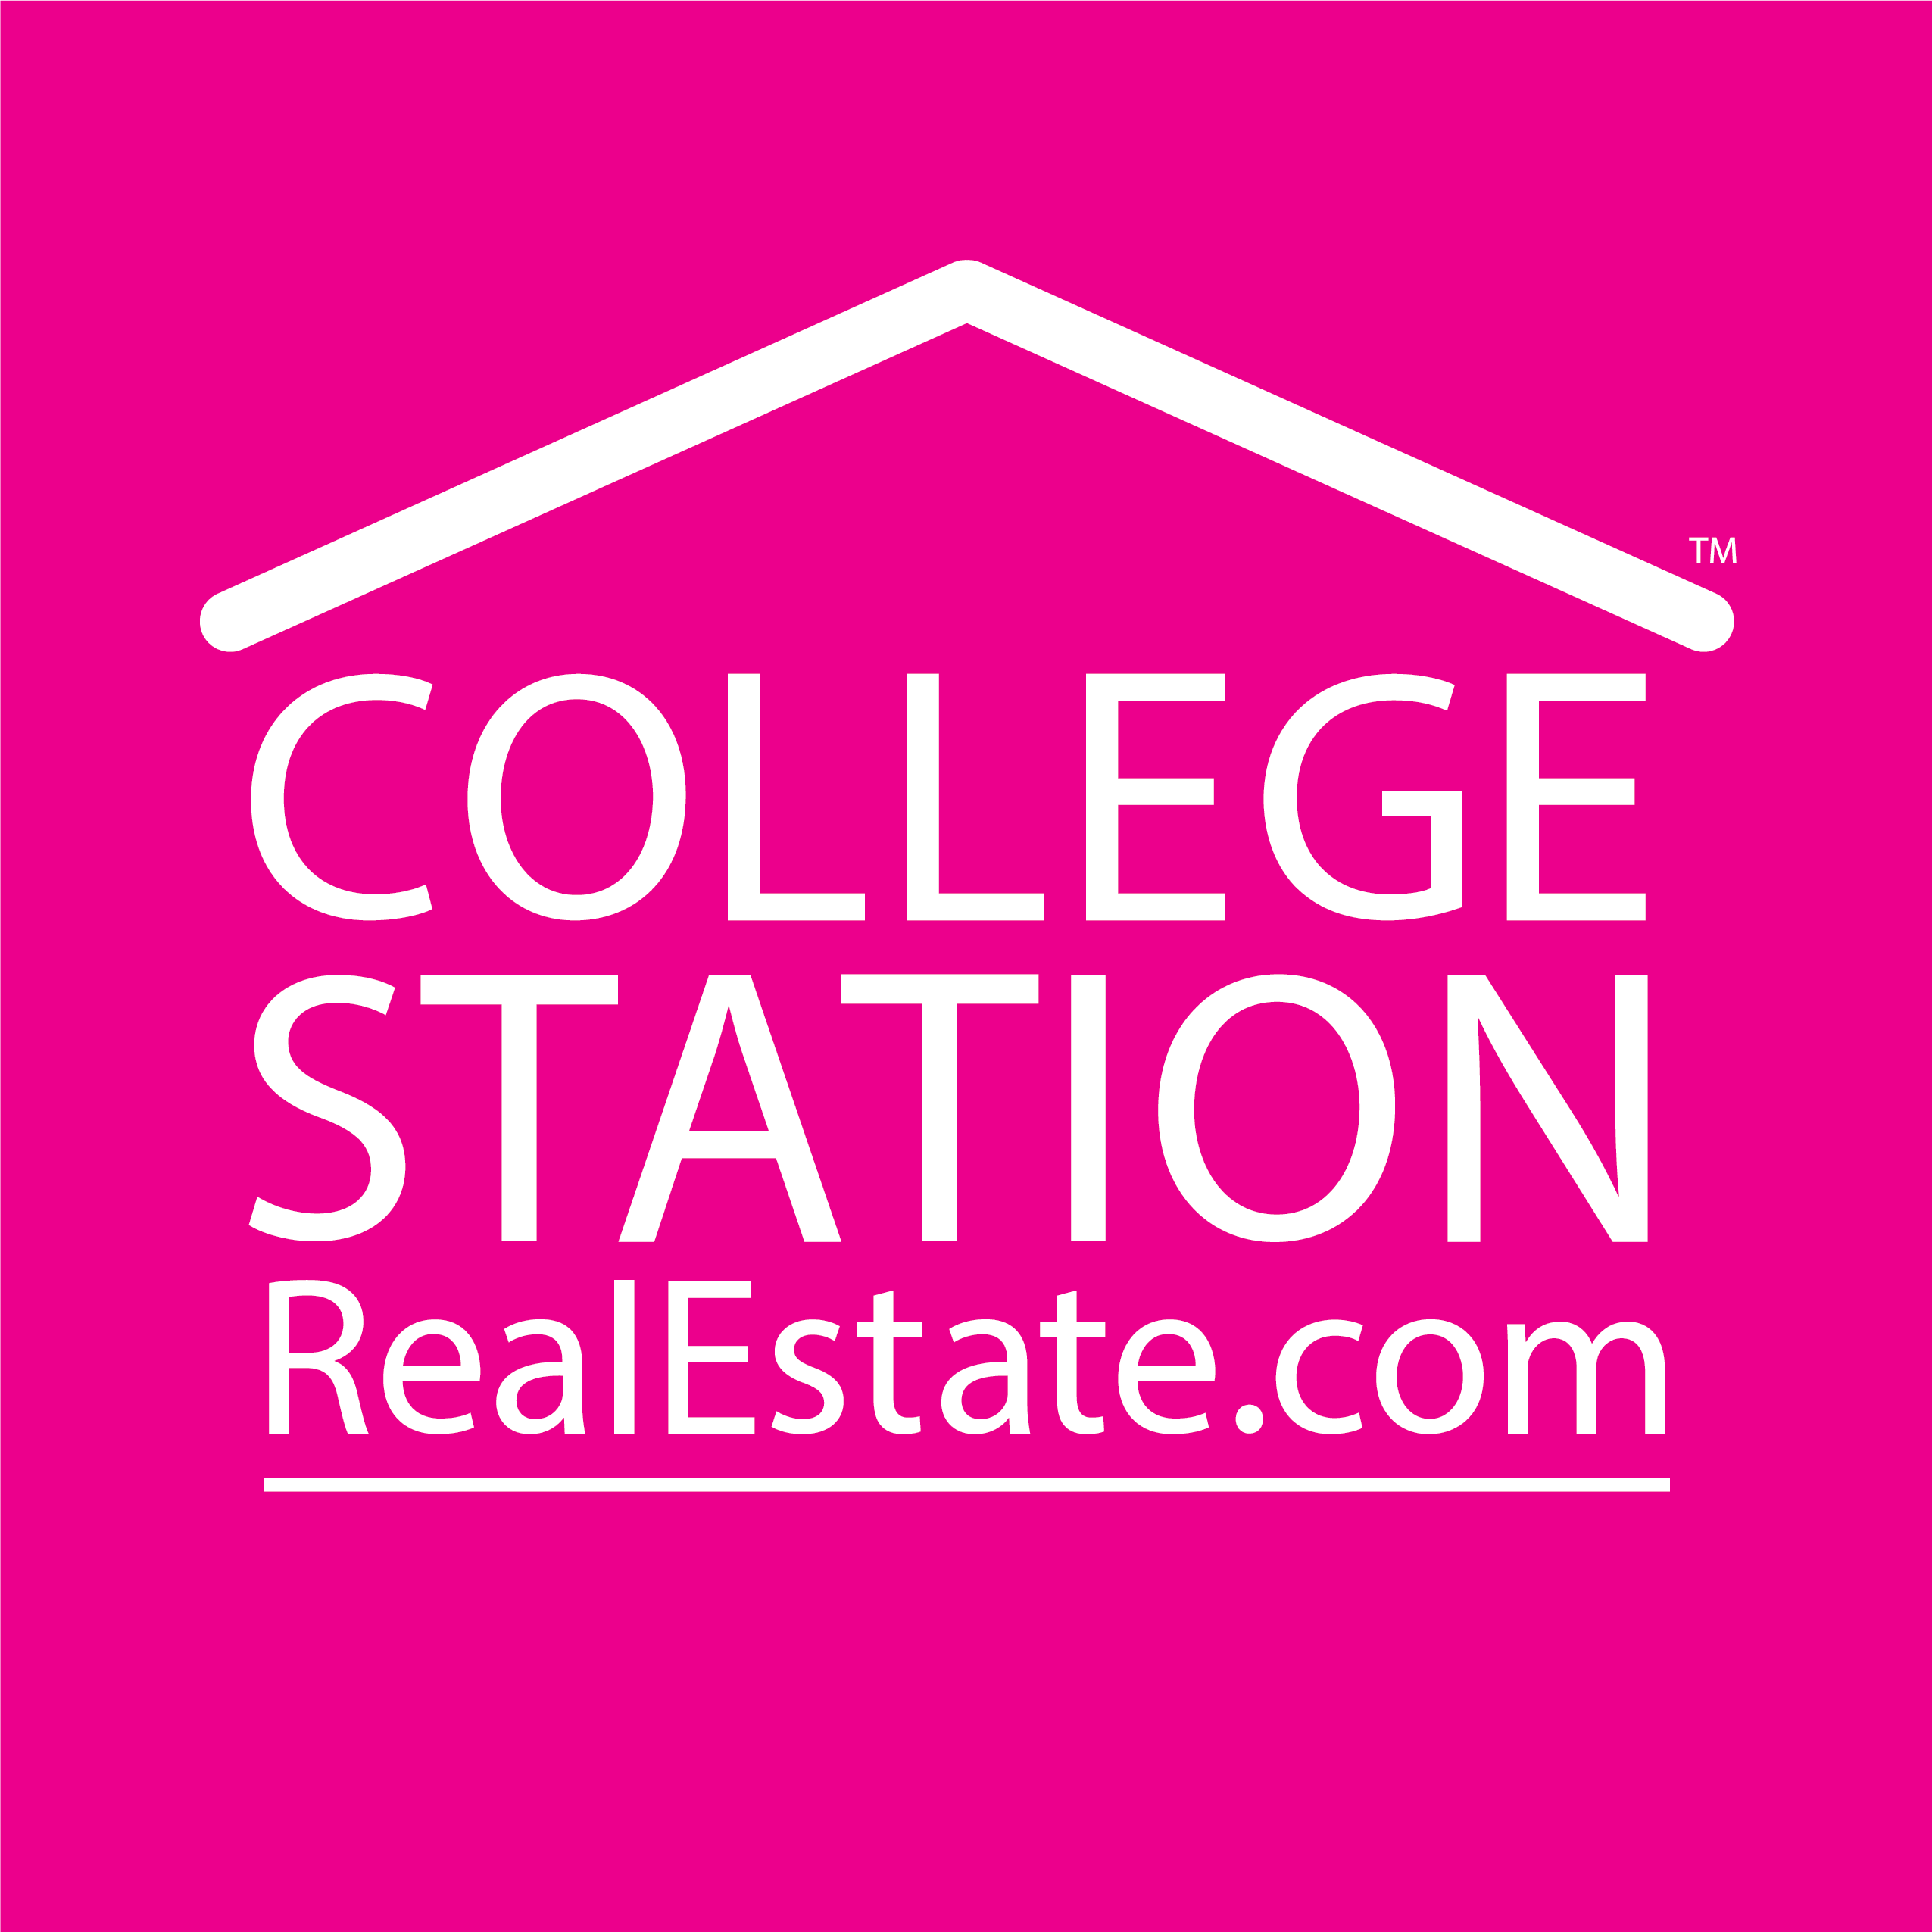 CollegeStationRealEstate.com